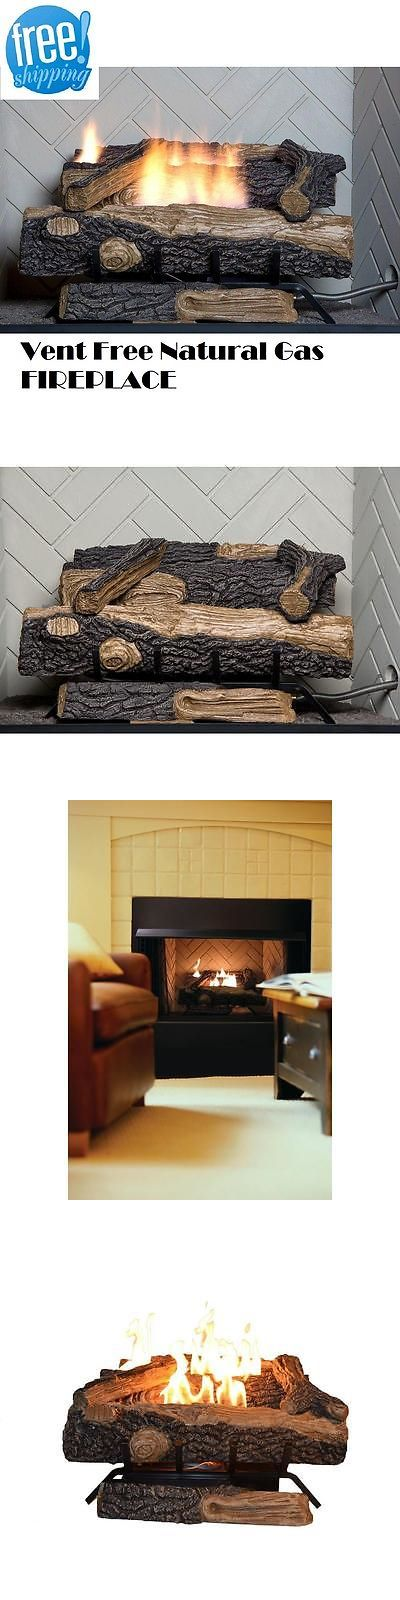 Gas Fireplace gas fireplace exterior vent cover : Best 20+ Vented gas fireplace ideas on Pinterest | Direct vent gas ...